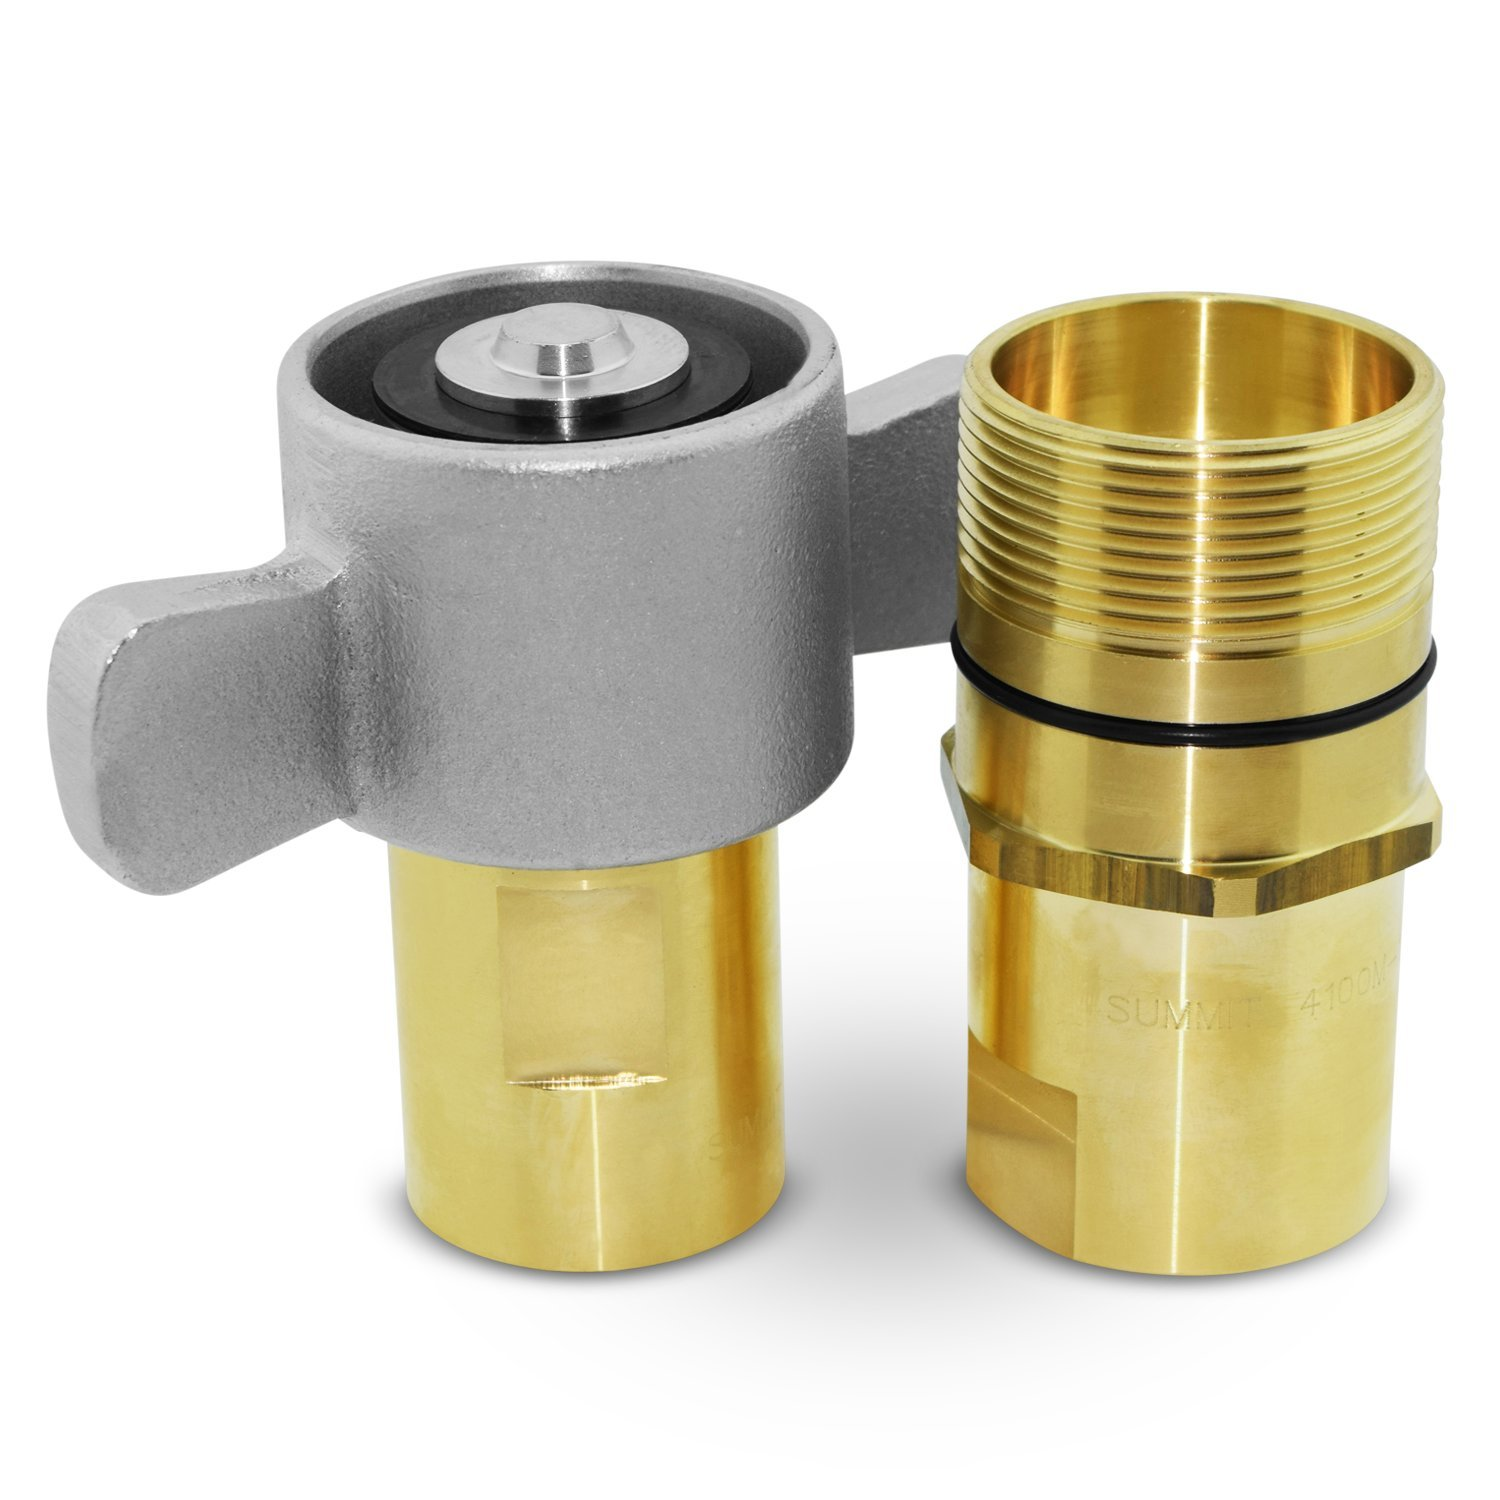 1'' NPT Wet-Line Wing Nut Hydraulic Quick Disconnect Coupler / Coupling Set